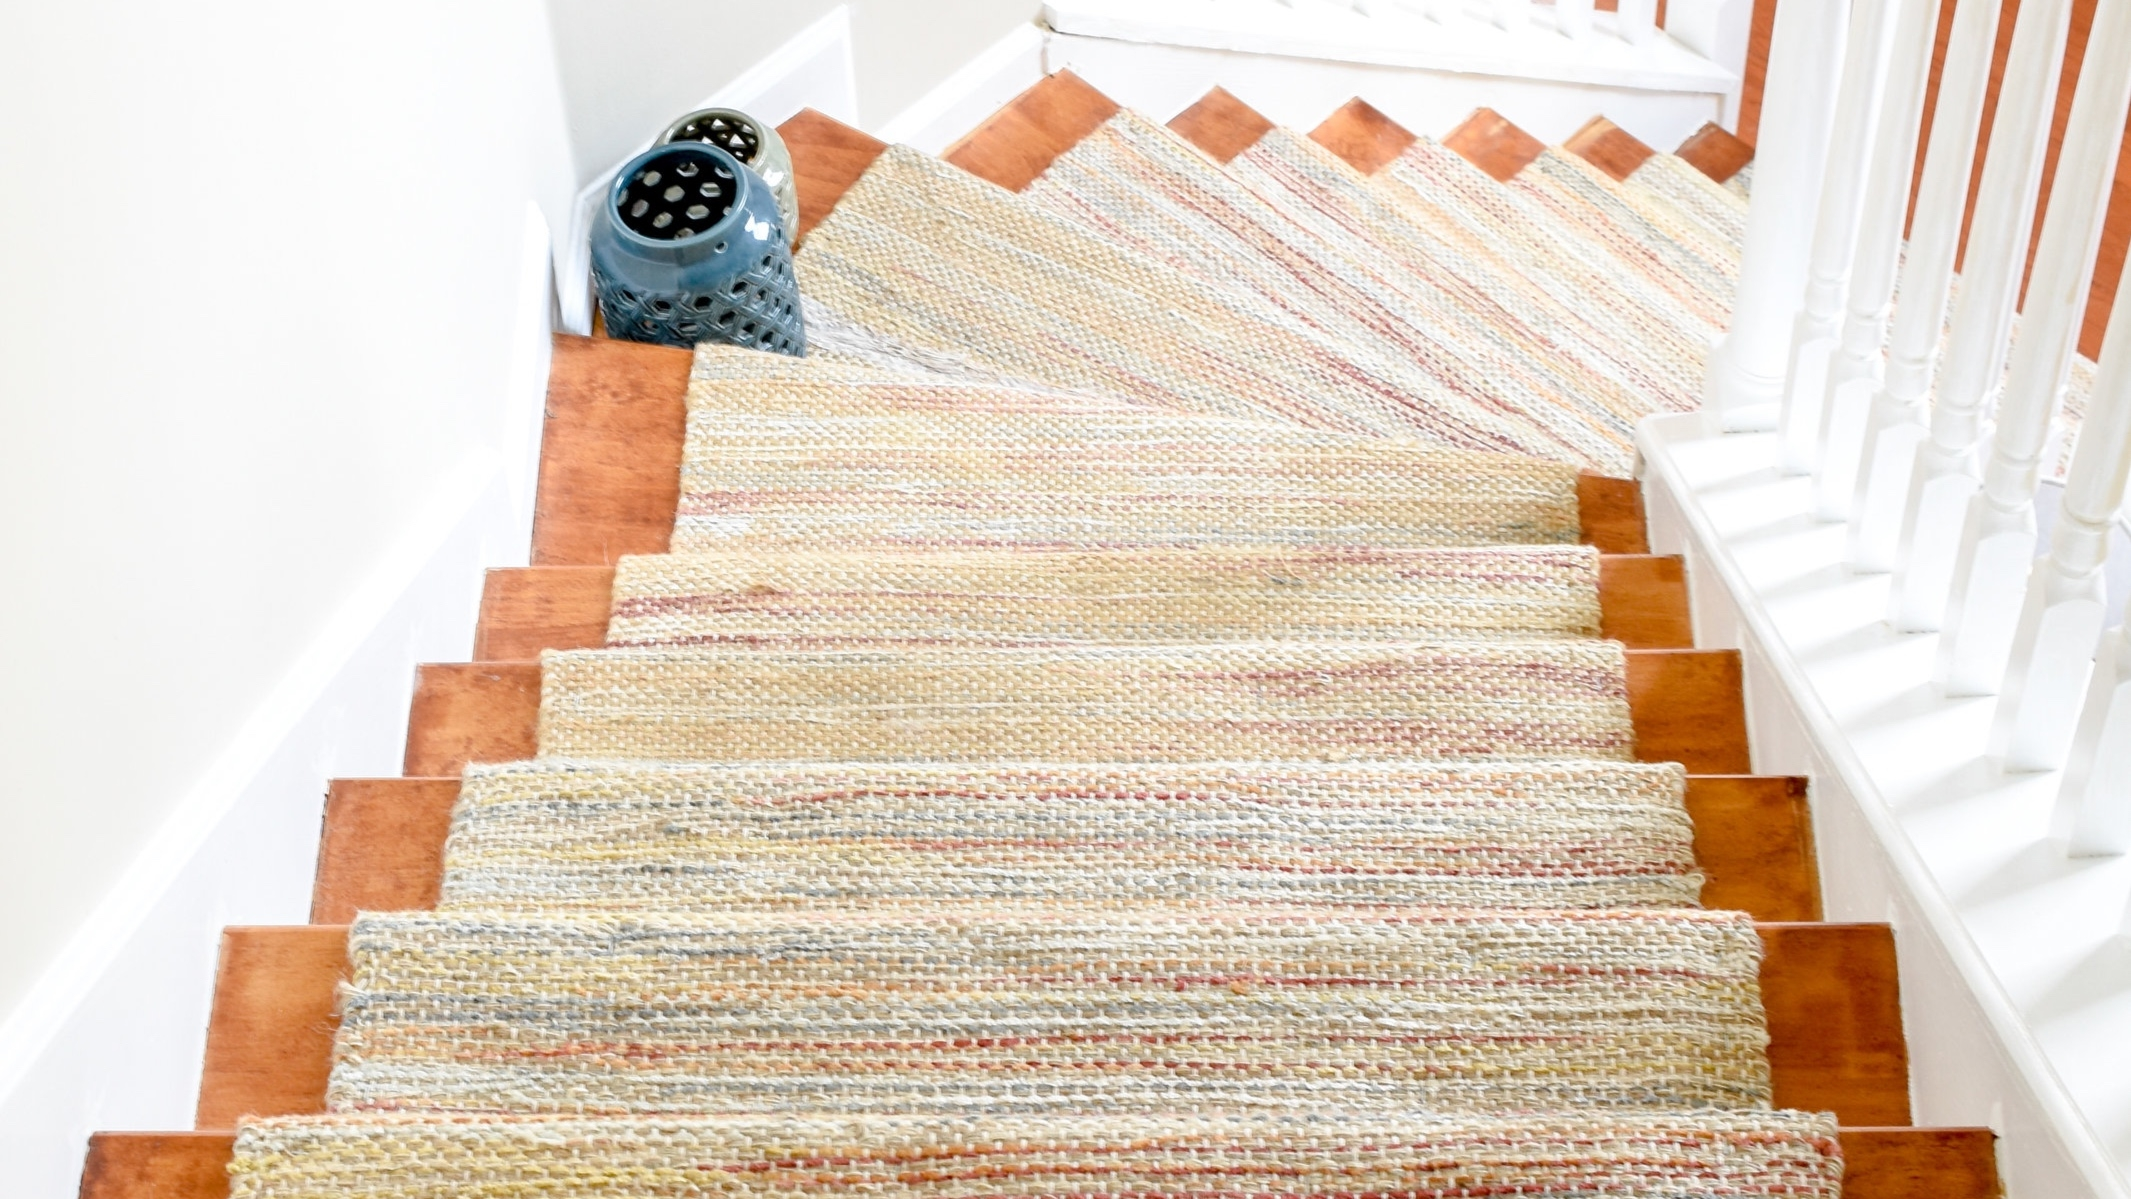 Diy Hardwood Staircase Makeover Replacing Carpet With Wood Treads | Flooring For Stairs Not Carpet | Stair Tread | Stain | Staircase Makeover | Bullnose Carpet | Laminate Flooring